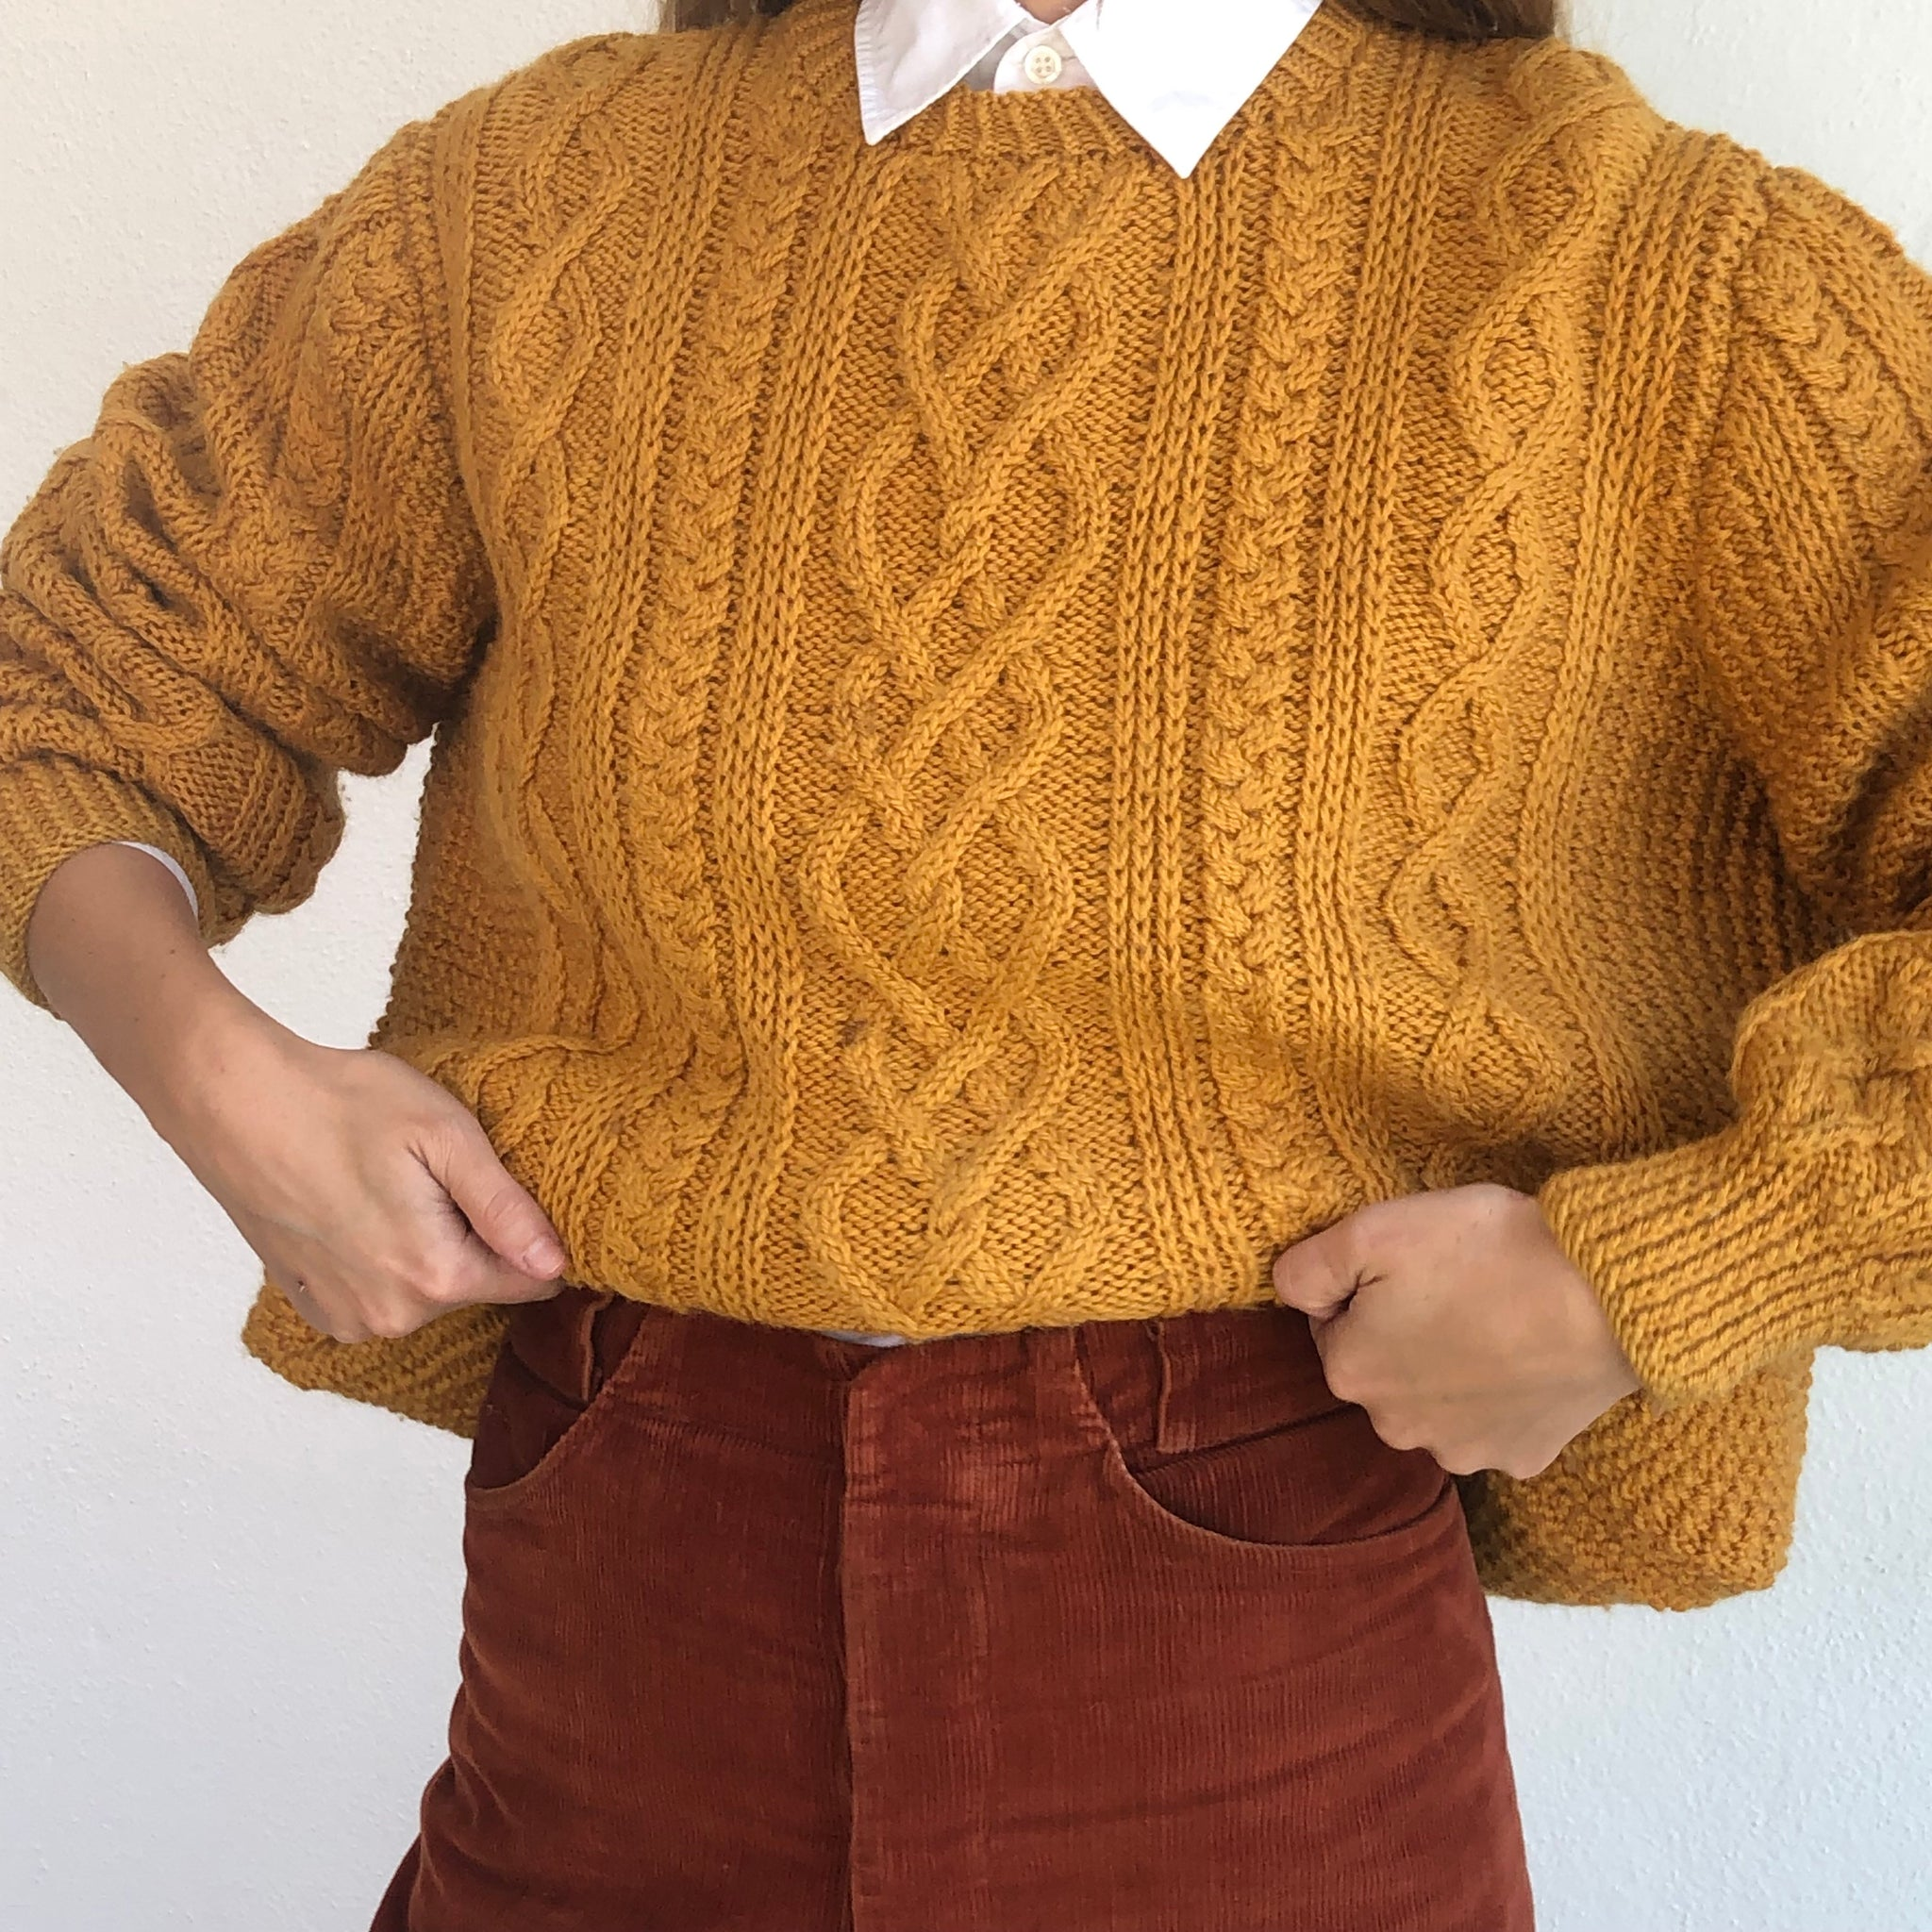 Golden Rod Oversized Wool Knit - Size Small to Large